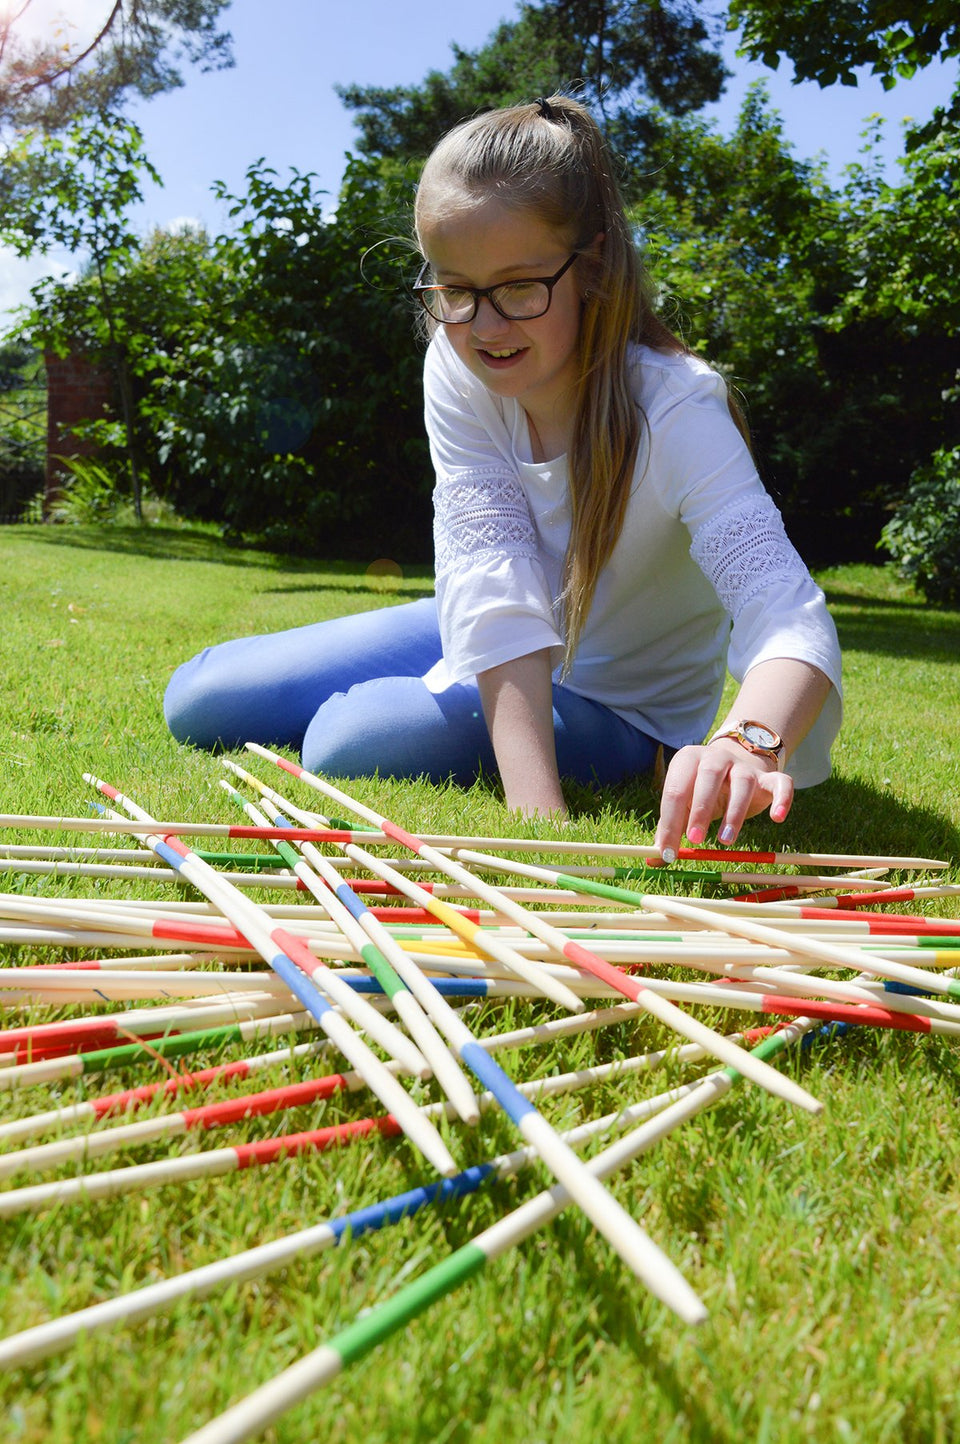 Garden Pick Up Sticks - PomPom